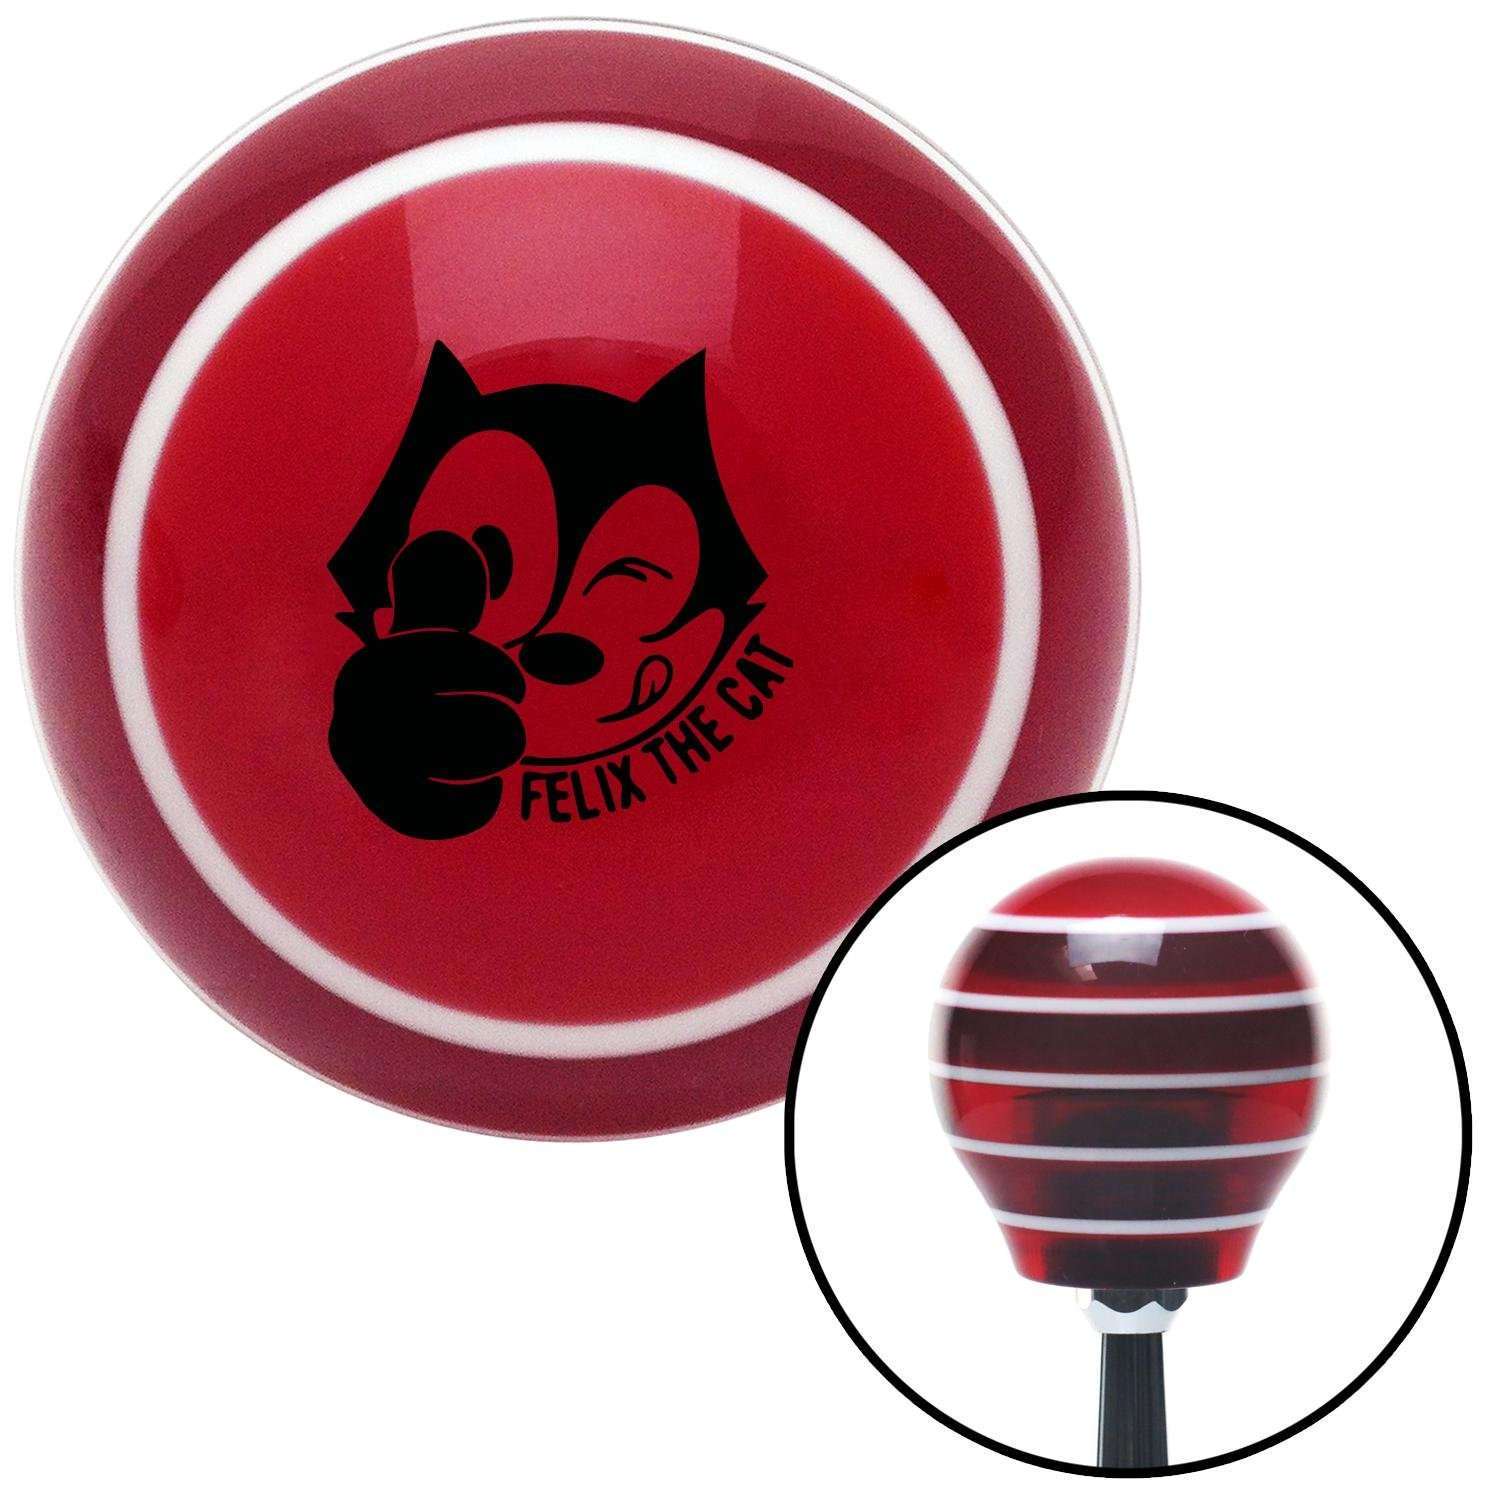 American Shifter 38141 Orange Metal Flake Shift Knob with 16mm x 1.5mm Insert Orange Concentrated